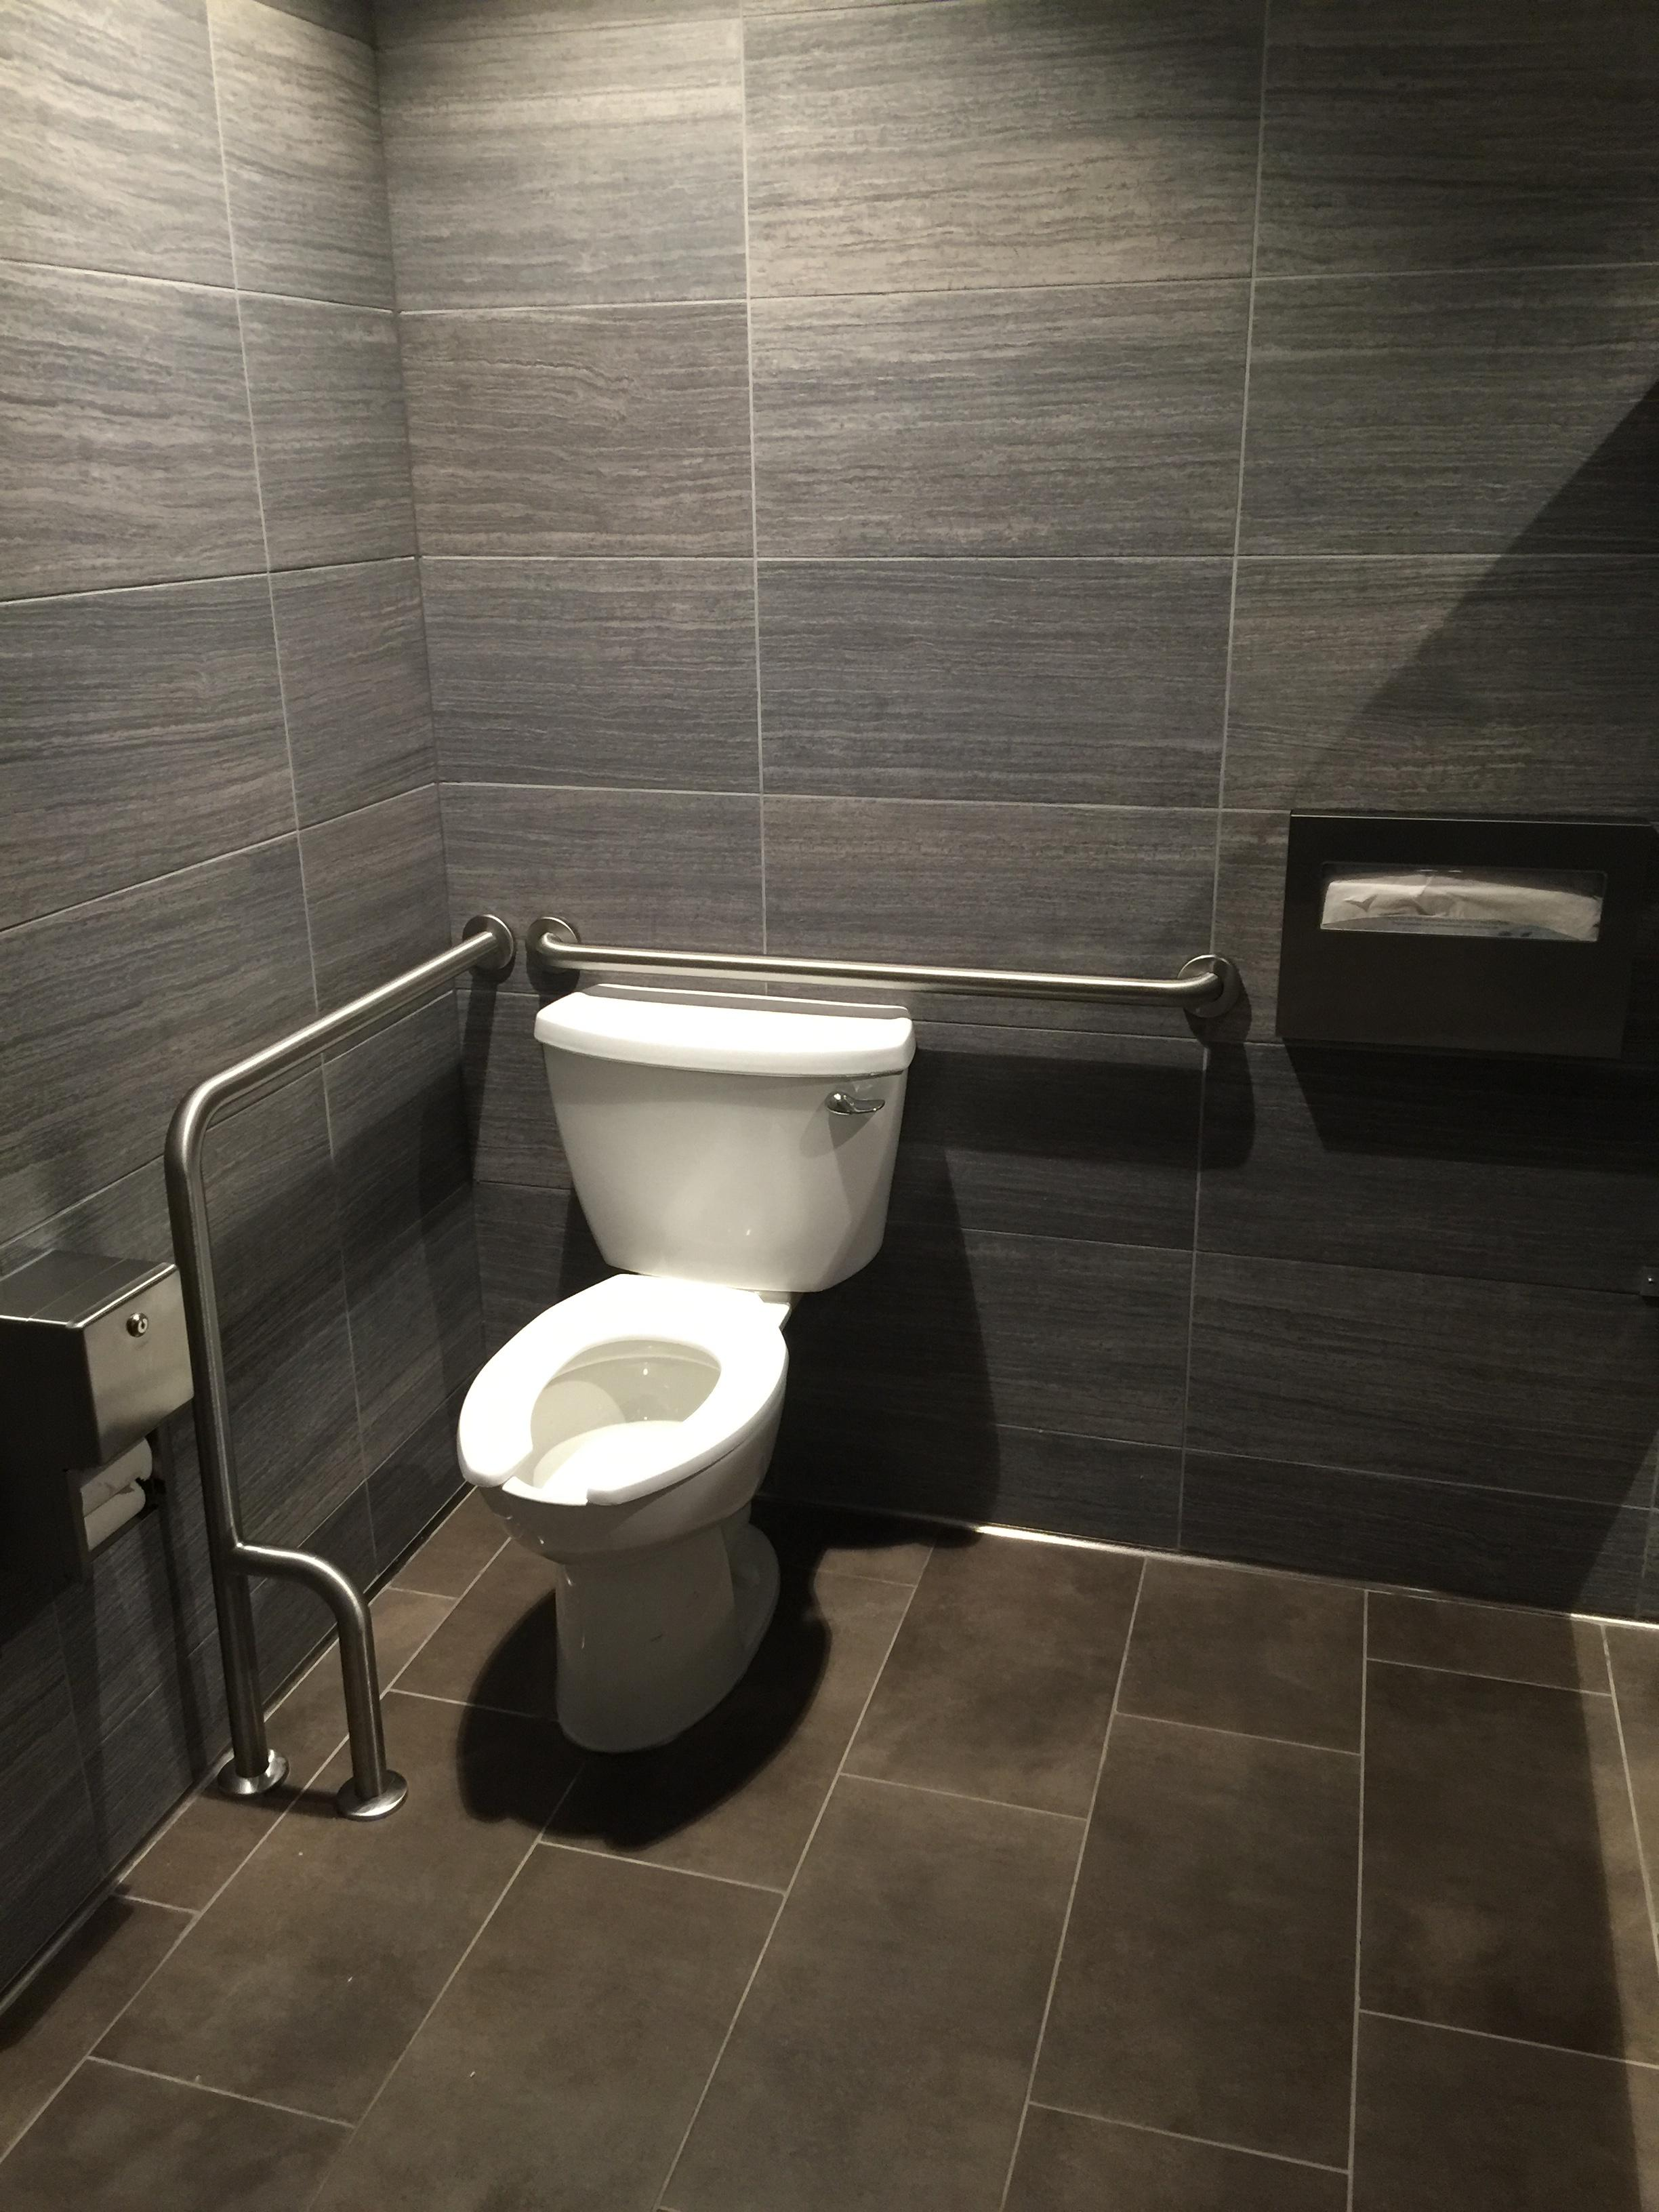 Ada restroom requirements what is wrong with this picture - Handicap bathroom requirements commercial ...